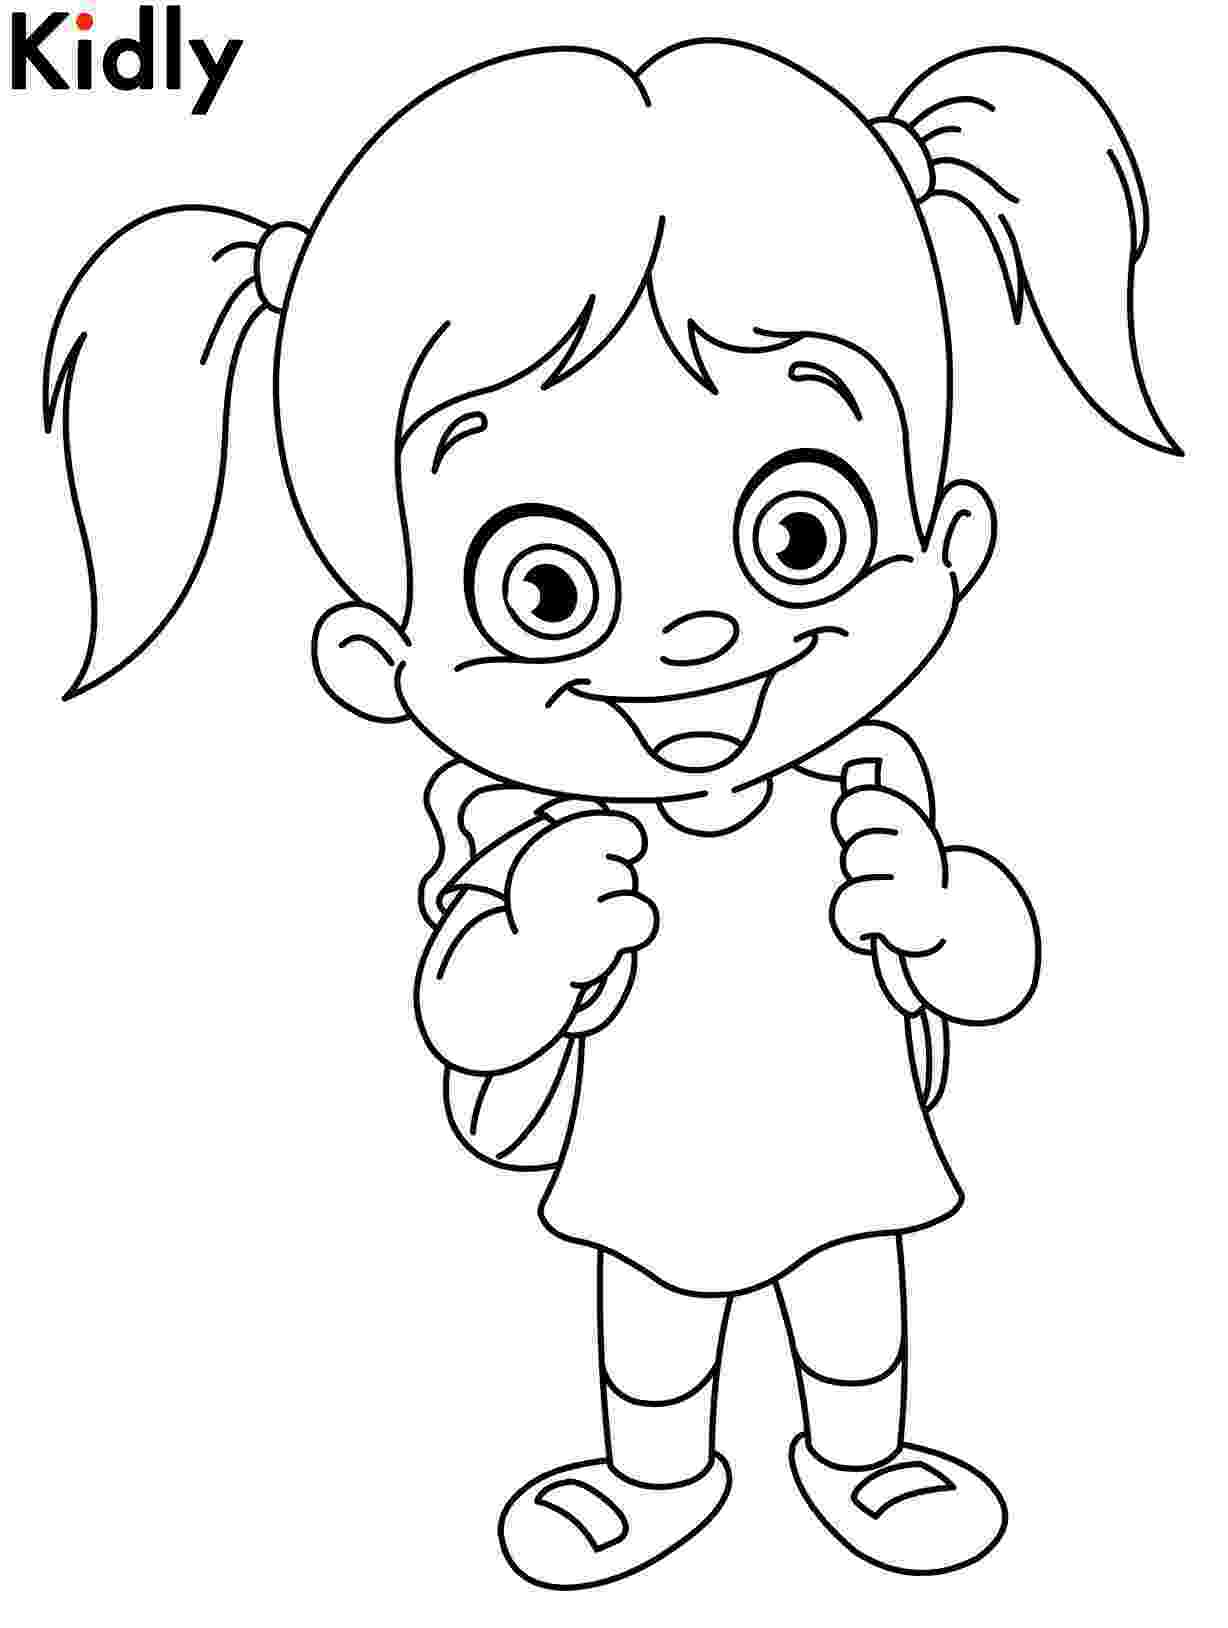 colering pages for girls coloring pages for girls best coloring pages for kids for girls pages colering